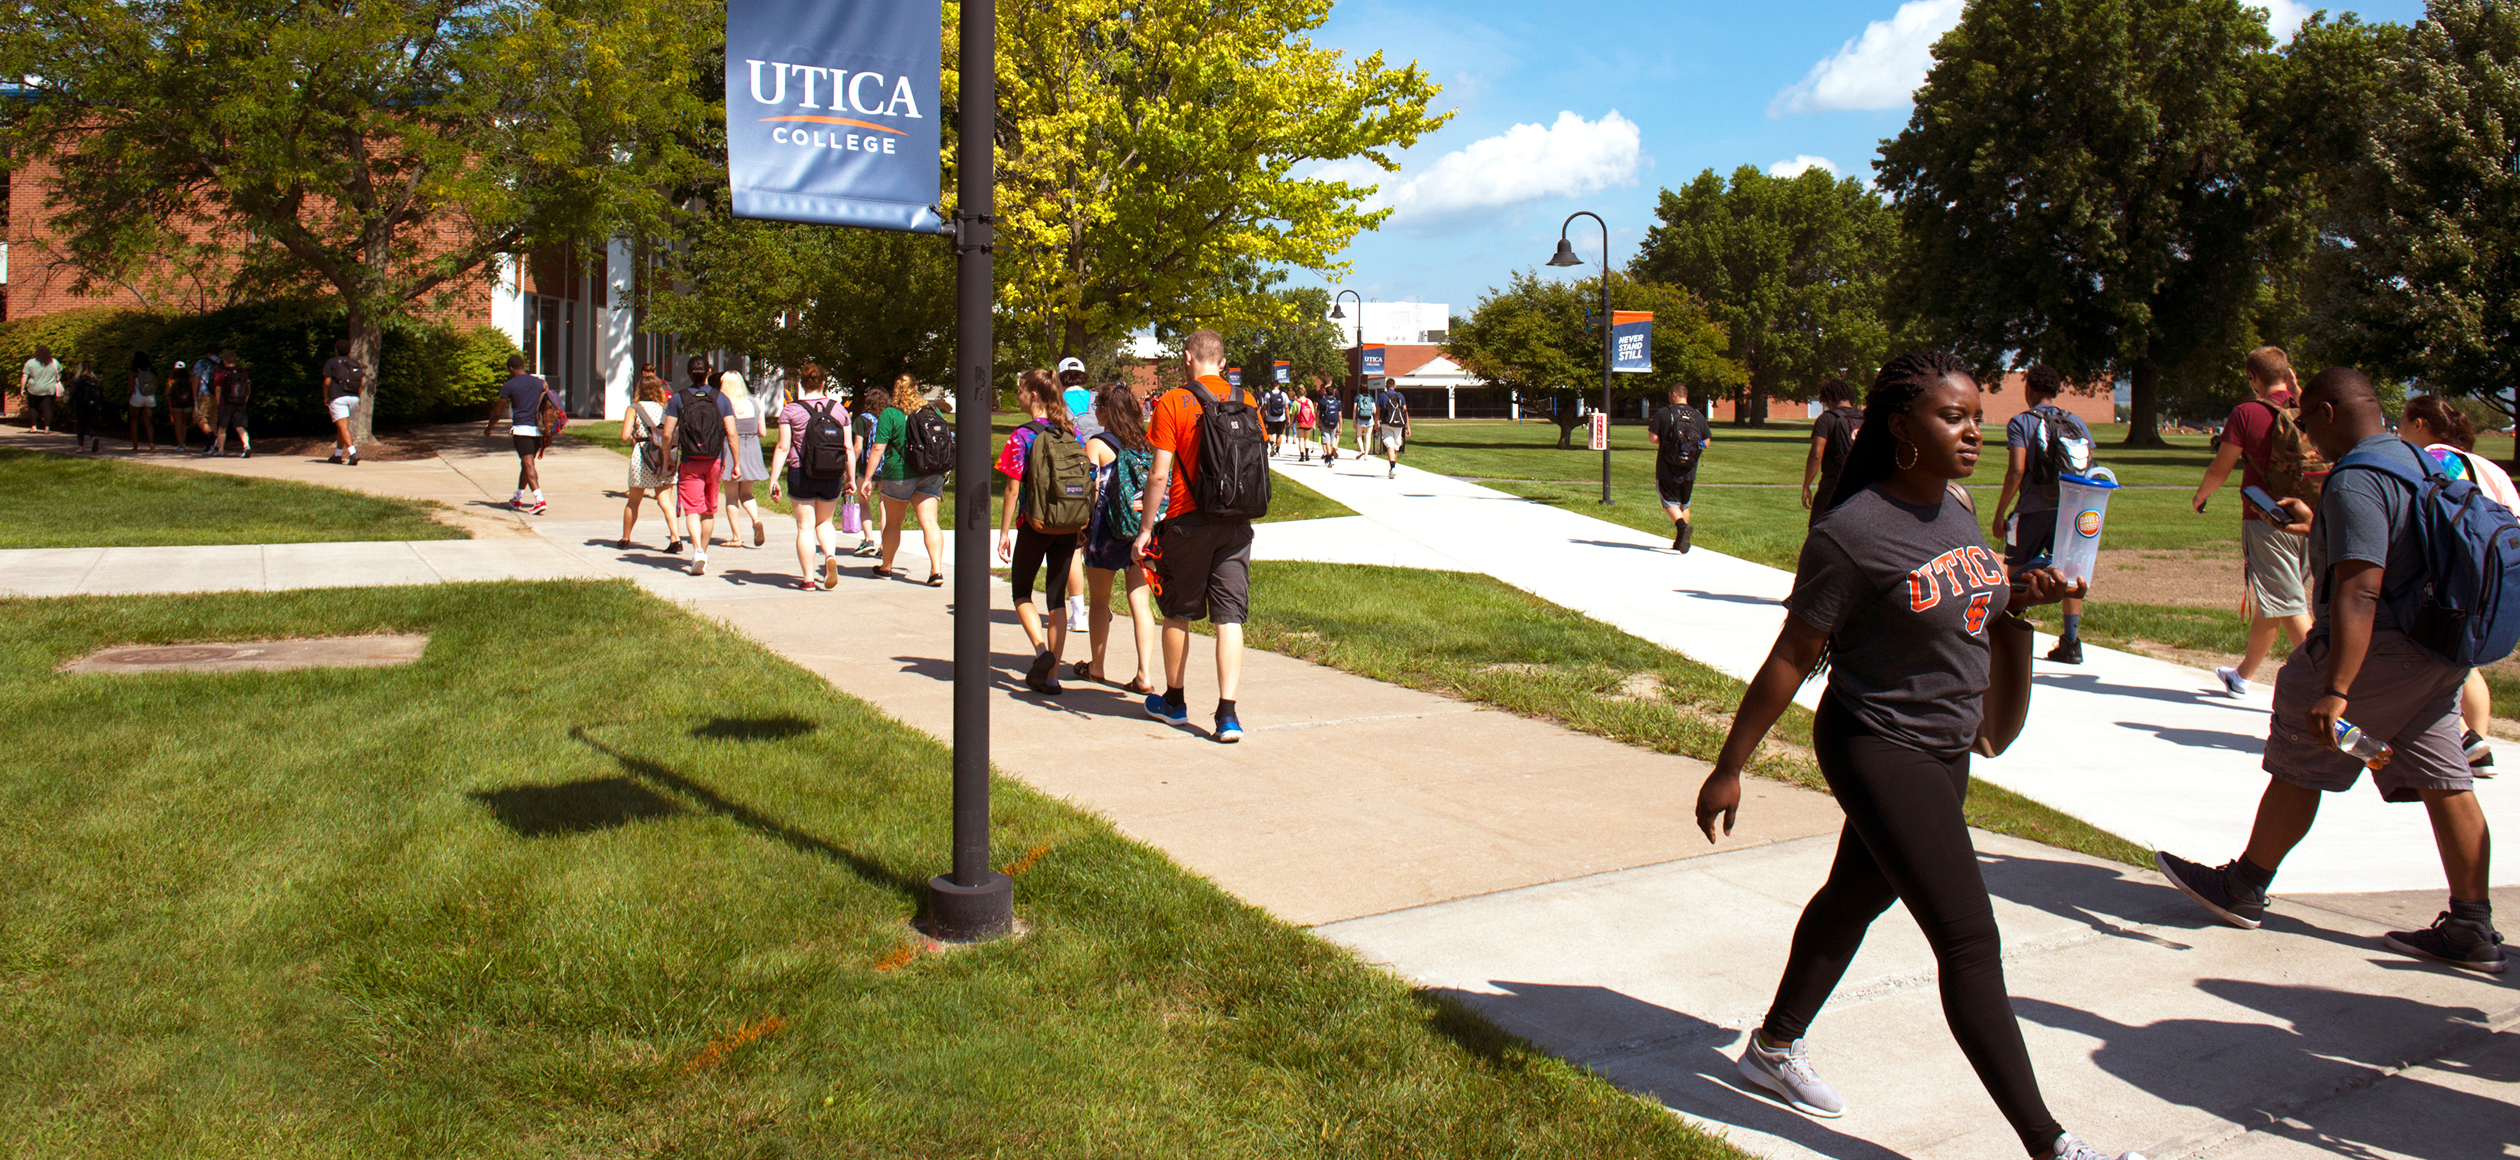 The Applied Ethics Institute at Utica College - No Fire Zone